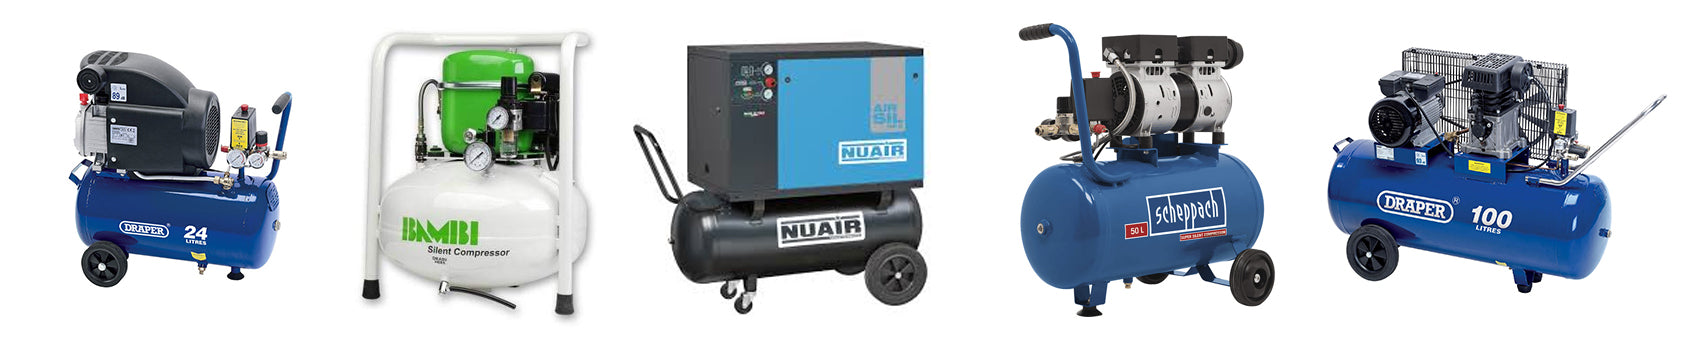 Best air compressors for fossil preparation including Draper, Bambi, Nuair Silent quiet oiled belt driven direct driven powerful fossil prep